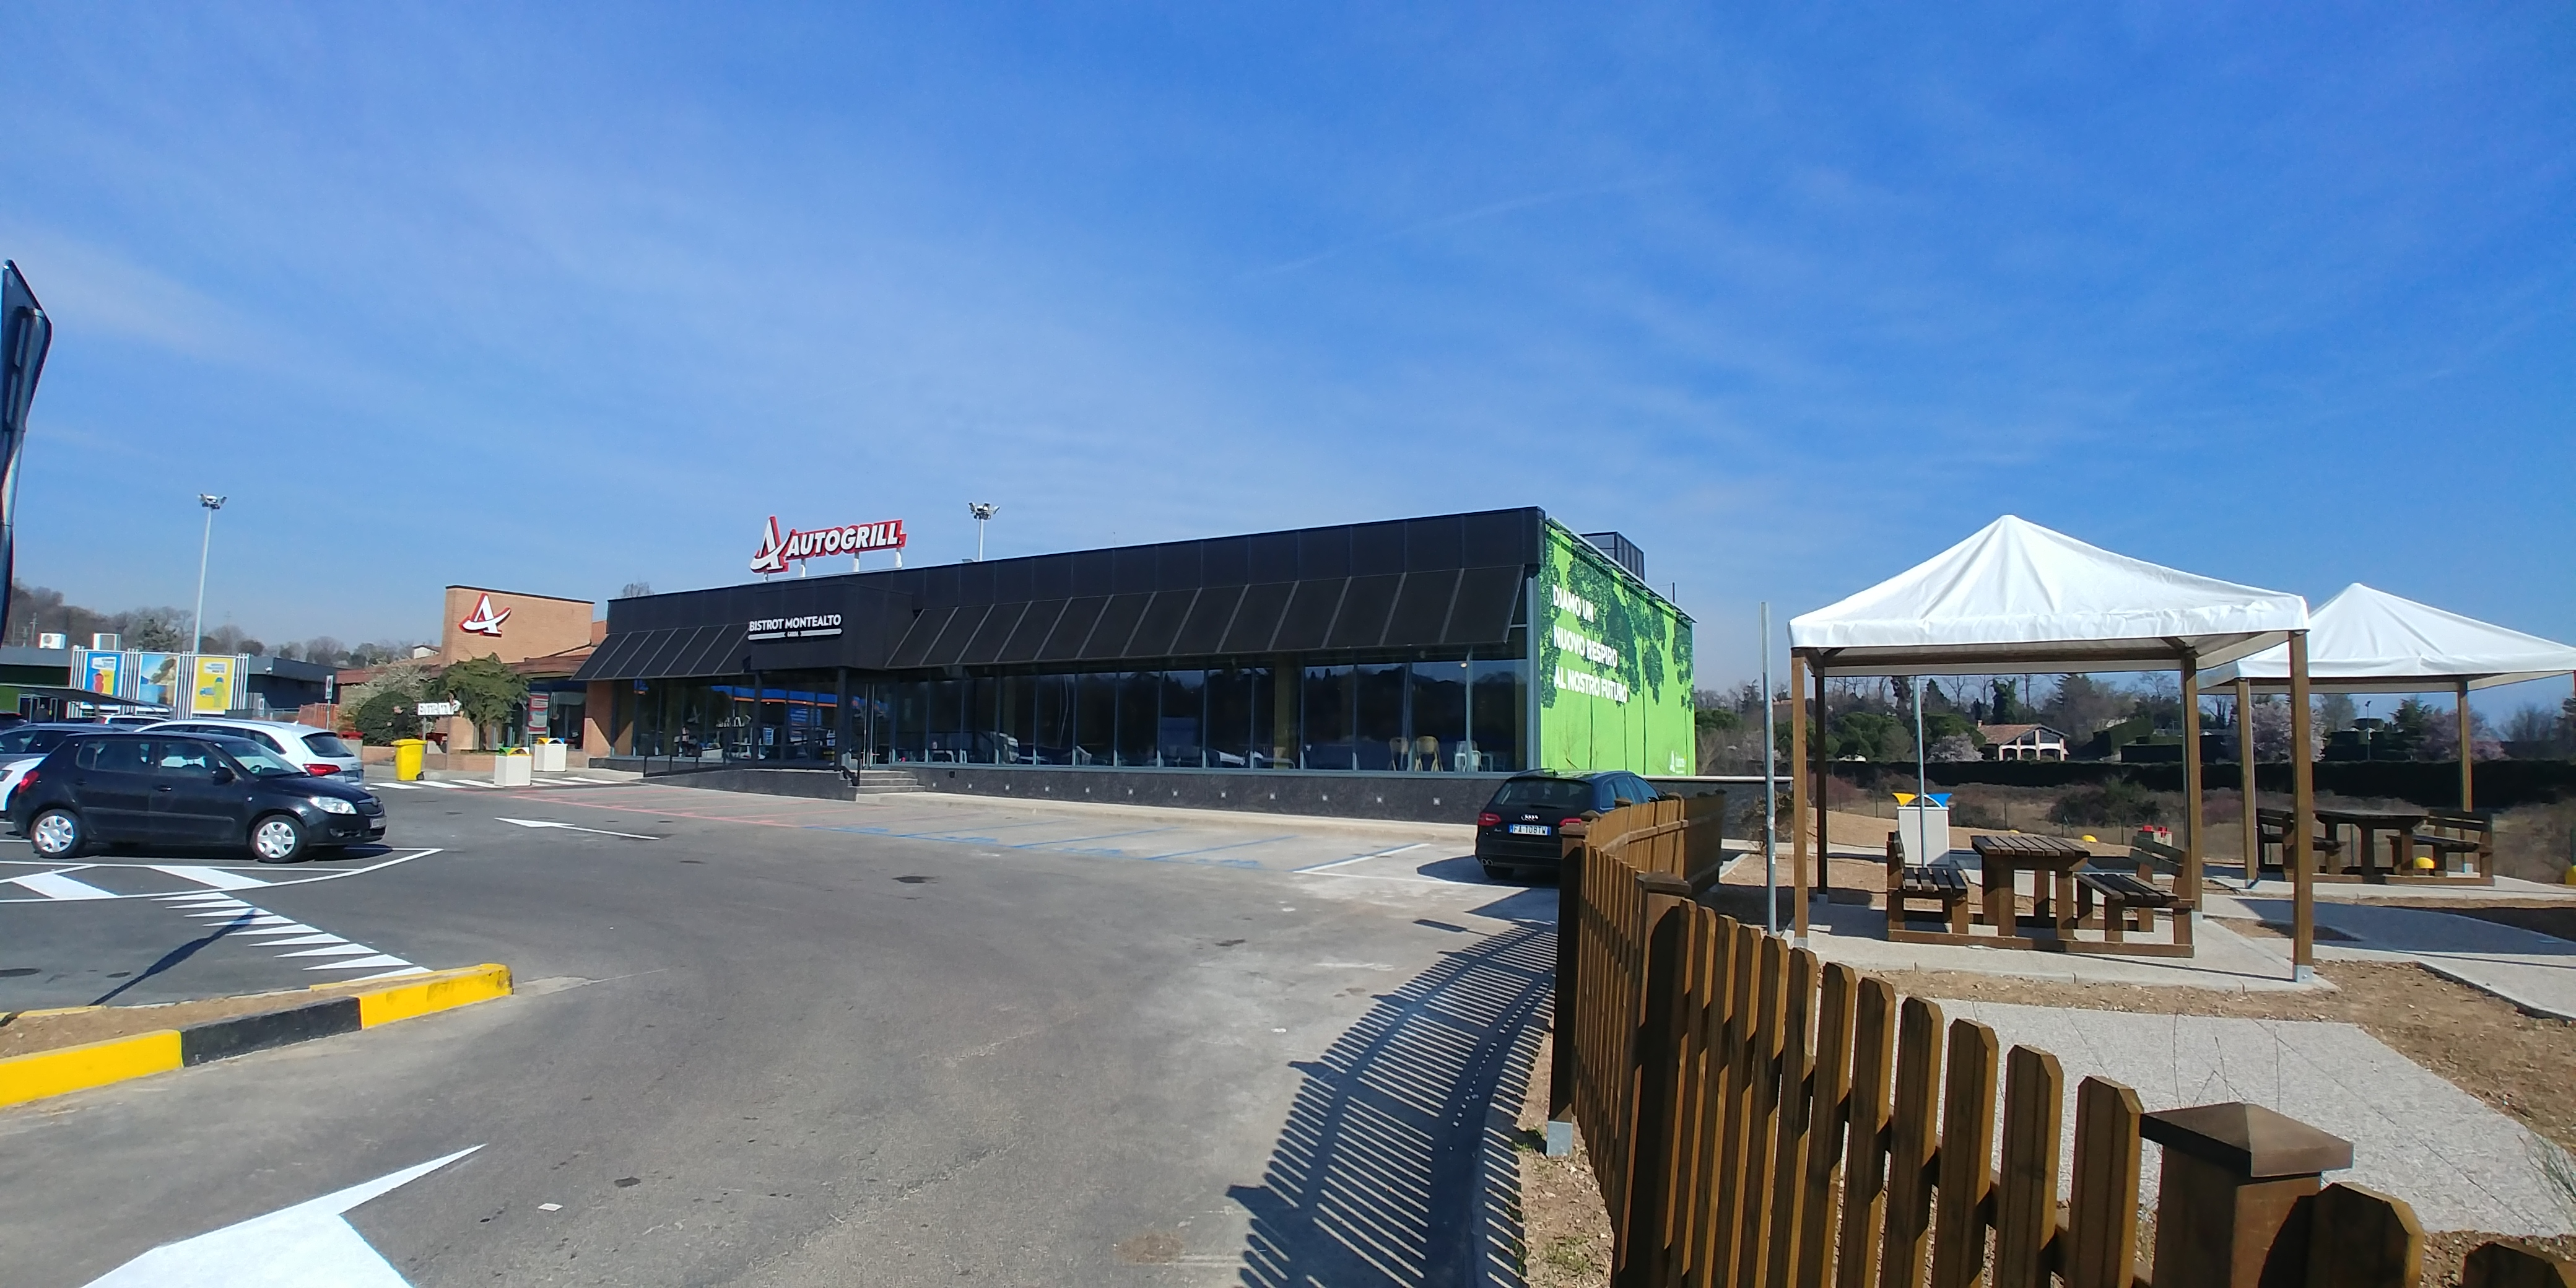 Autogrill Bistrot